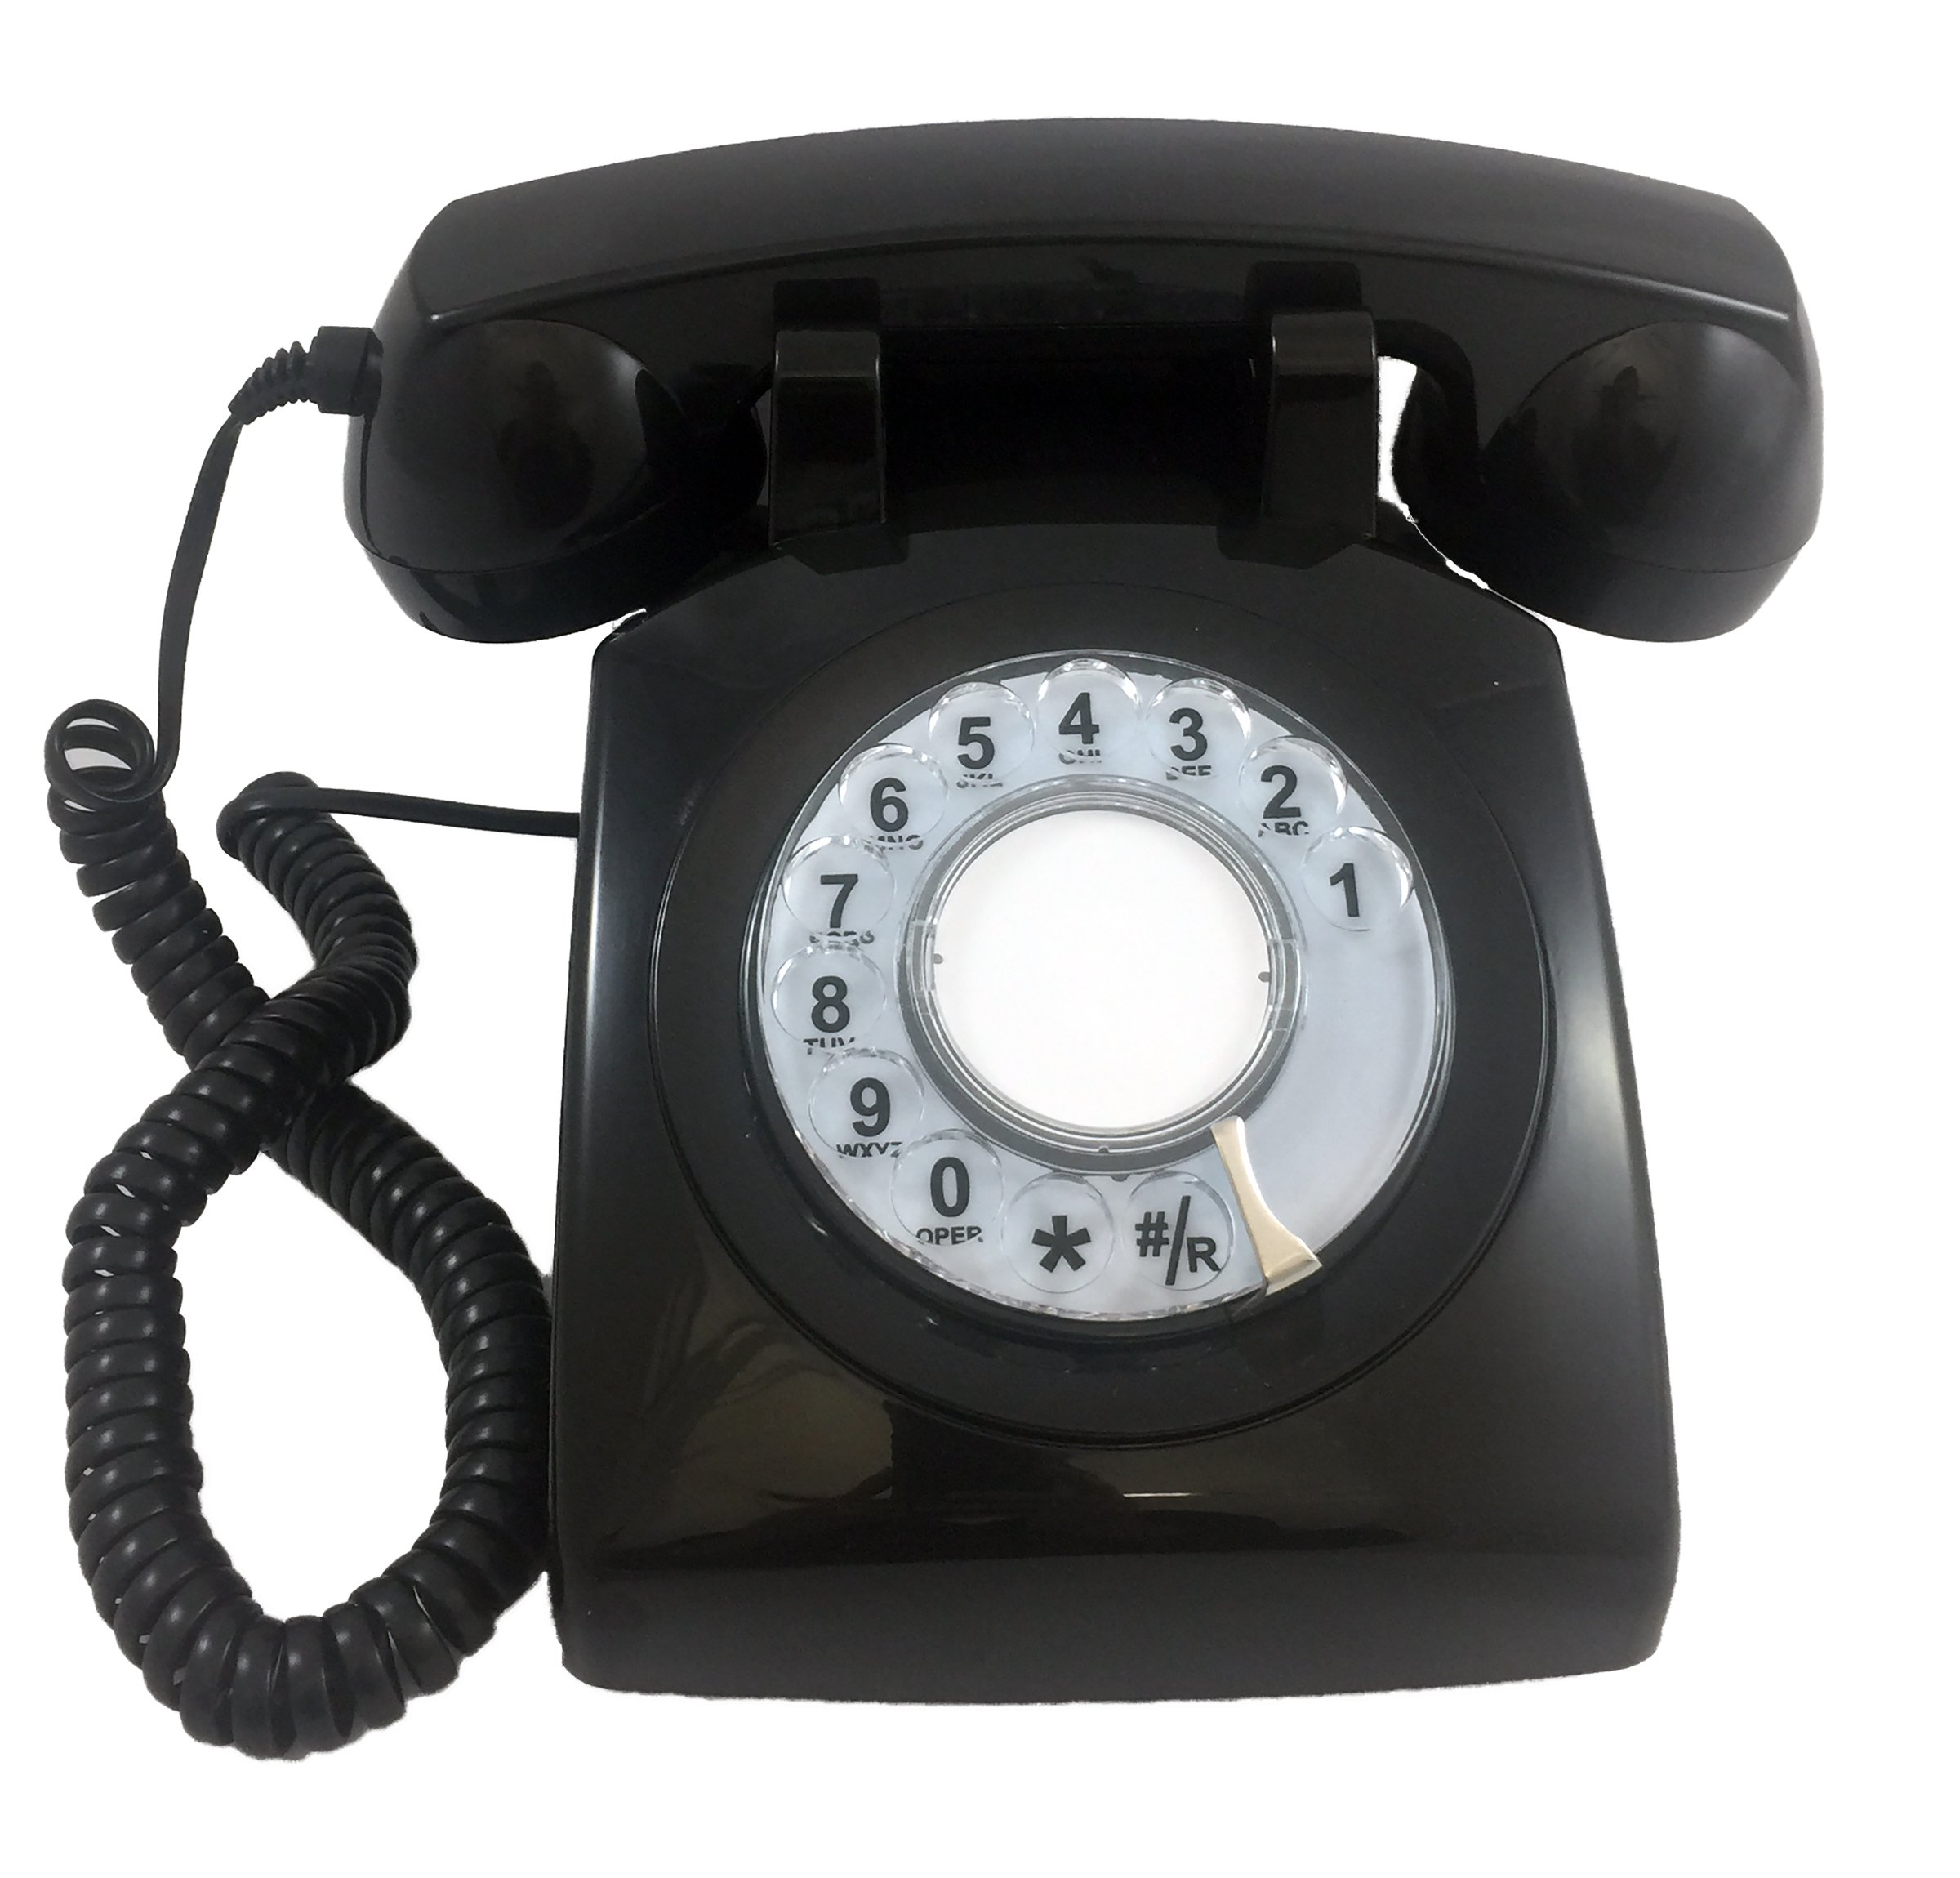 Modern Cool Decorate Princess Black Classic Old Model Timey School Antique Vintage Novelty Funky Looking Style Retro Rotary Dial Fashion House Office Landline Phone Reproduction Replica Clone